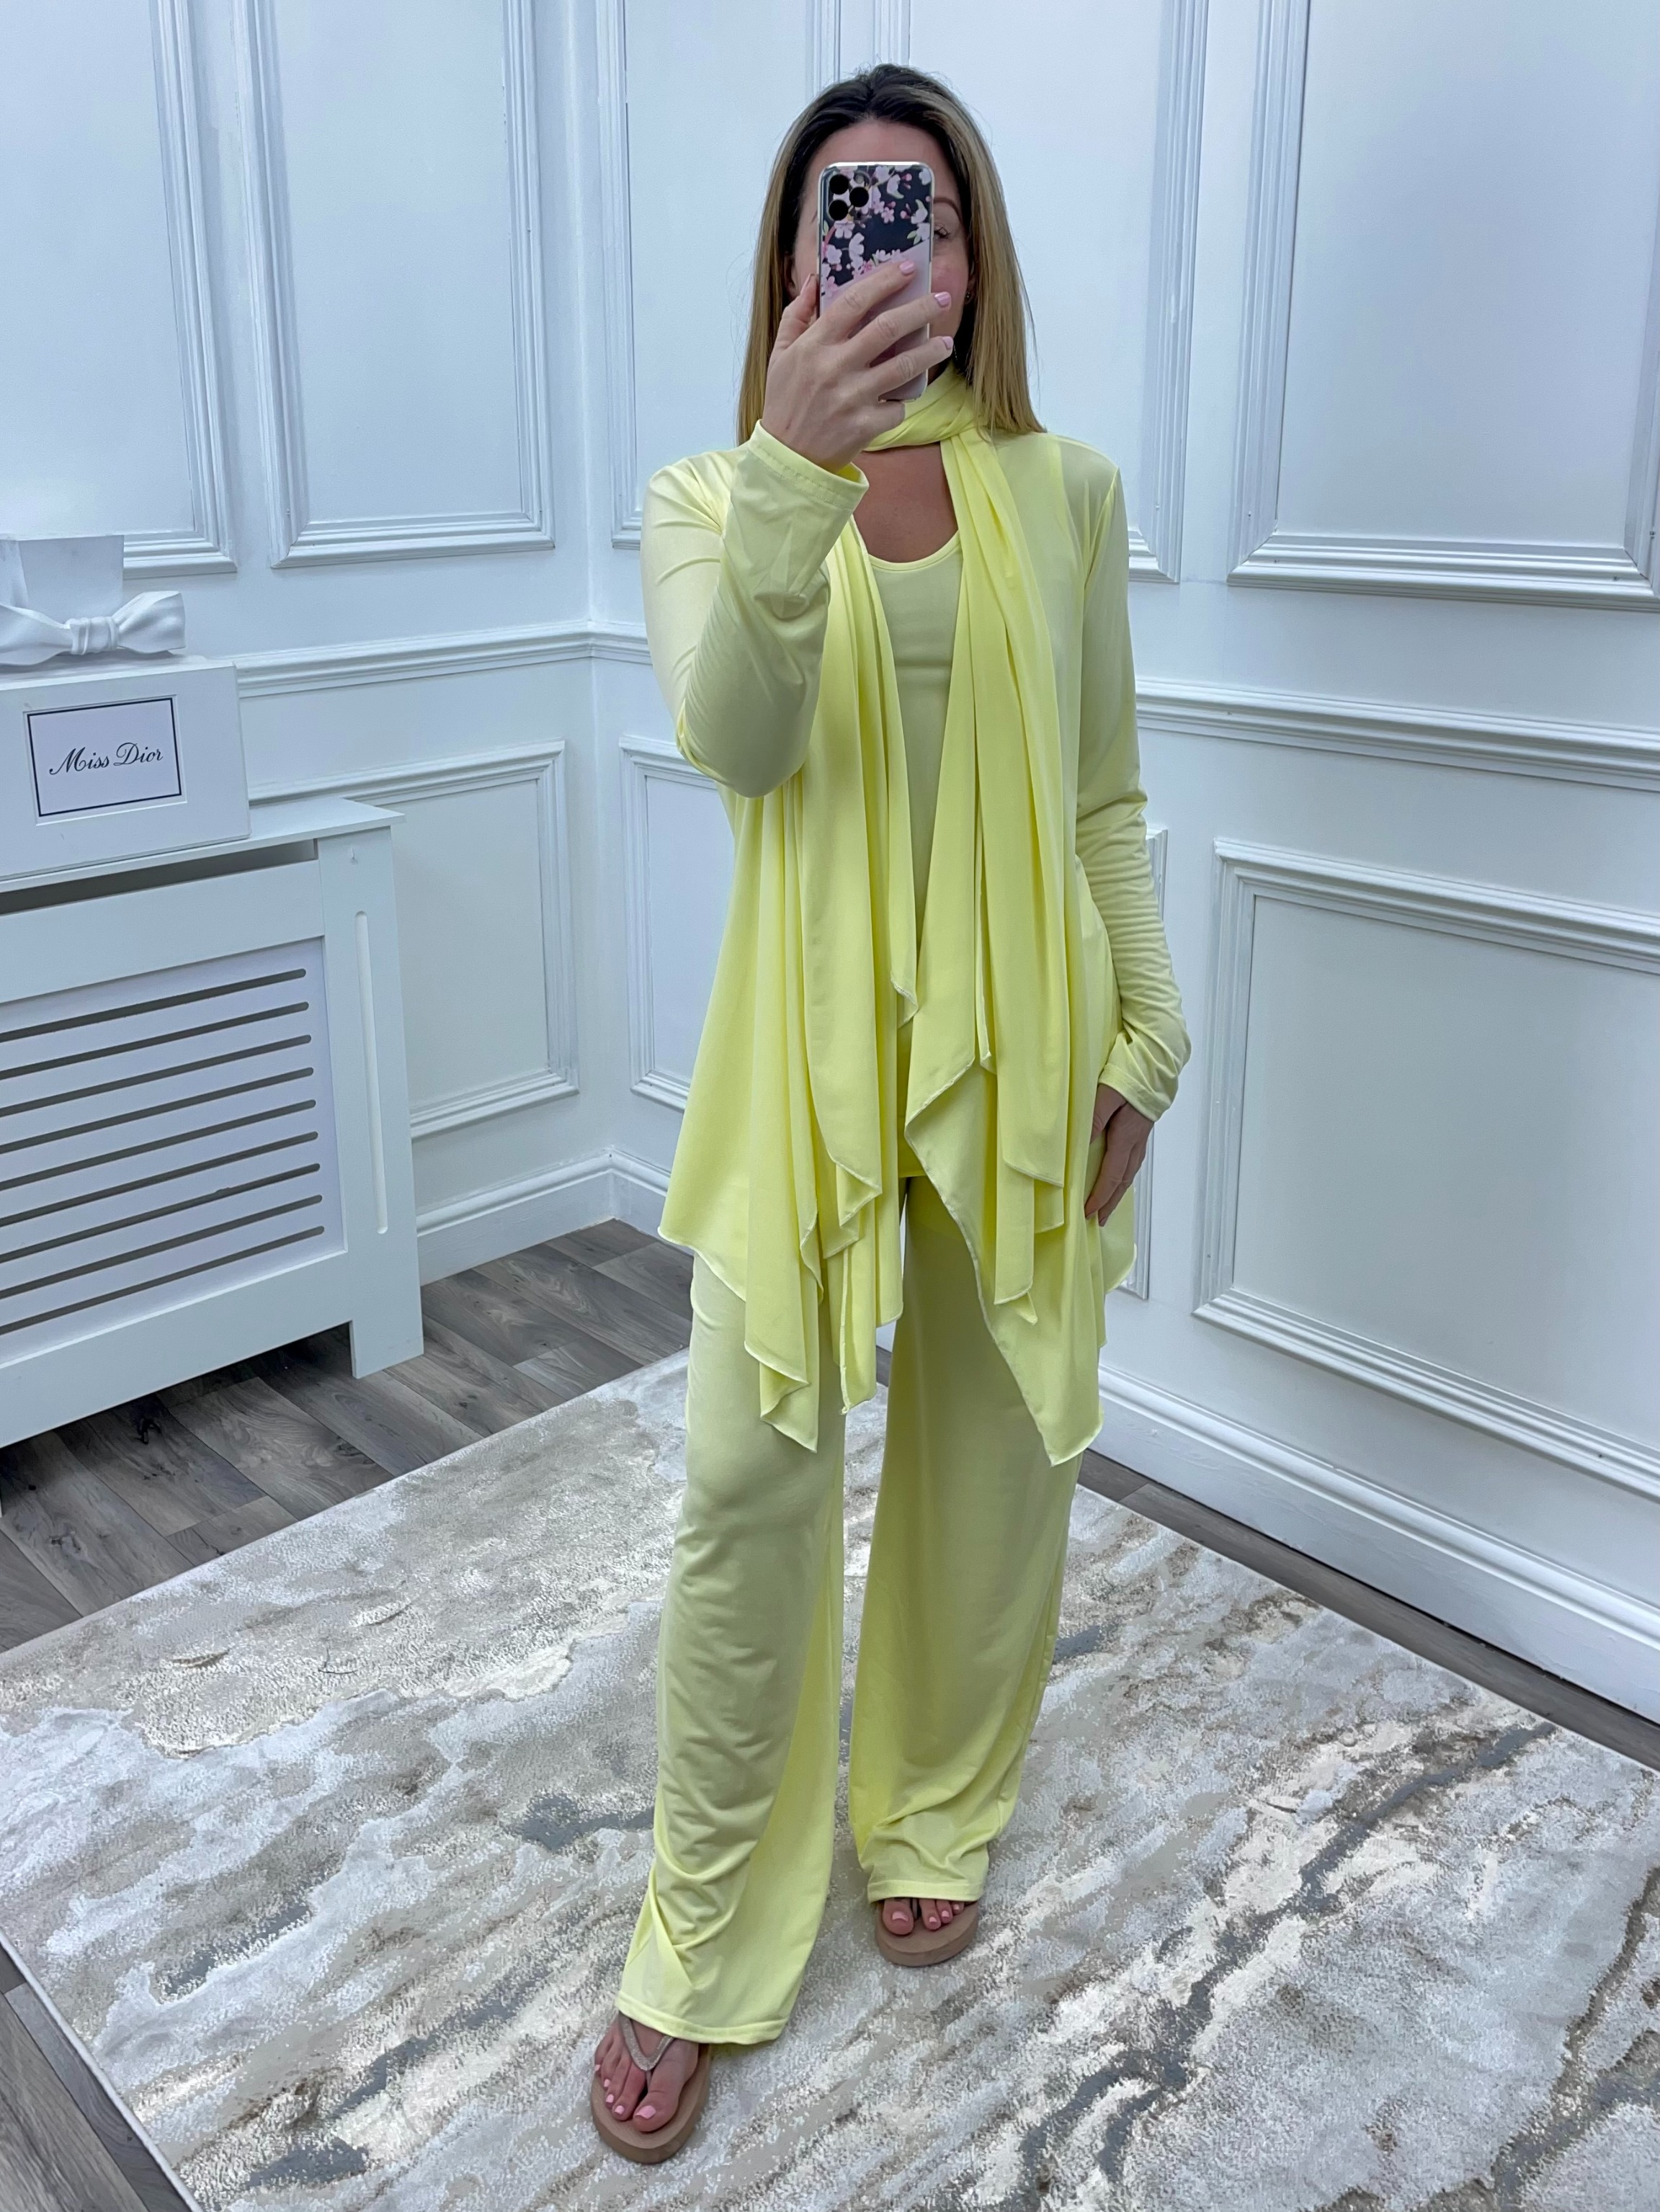 Luxury 4 Pieces Loungwear 'Monaco' Lemon